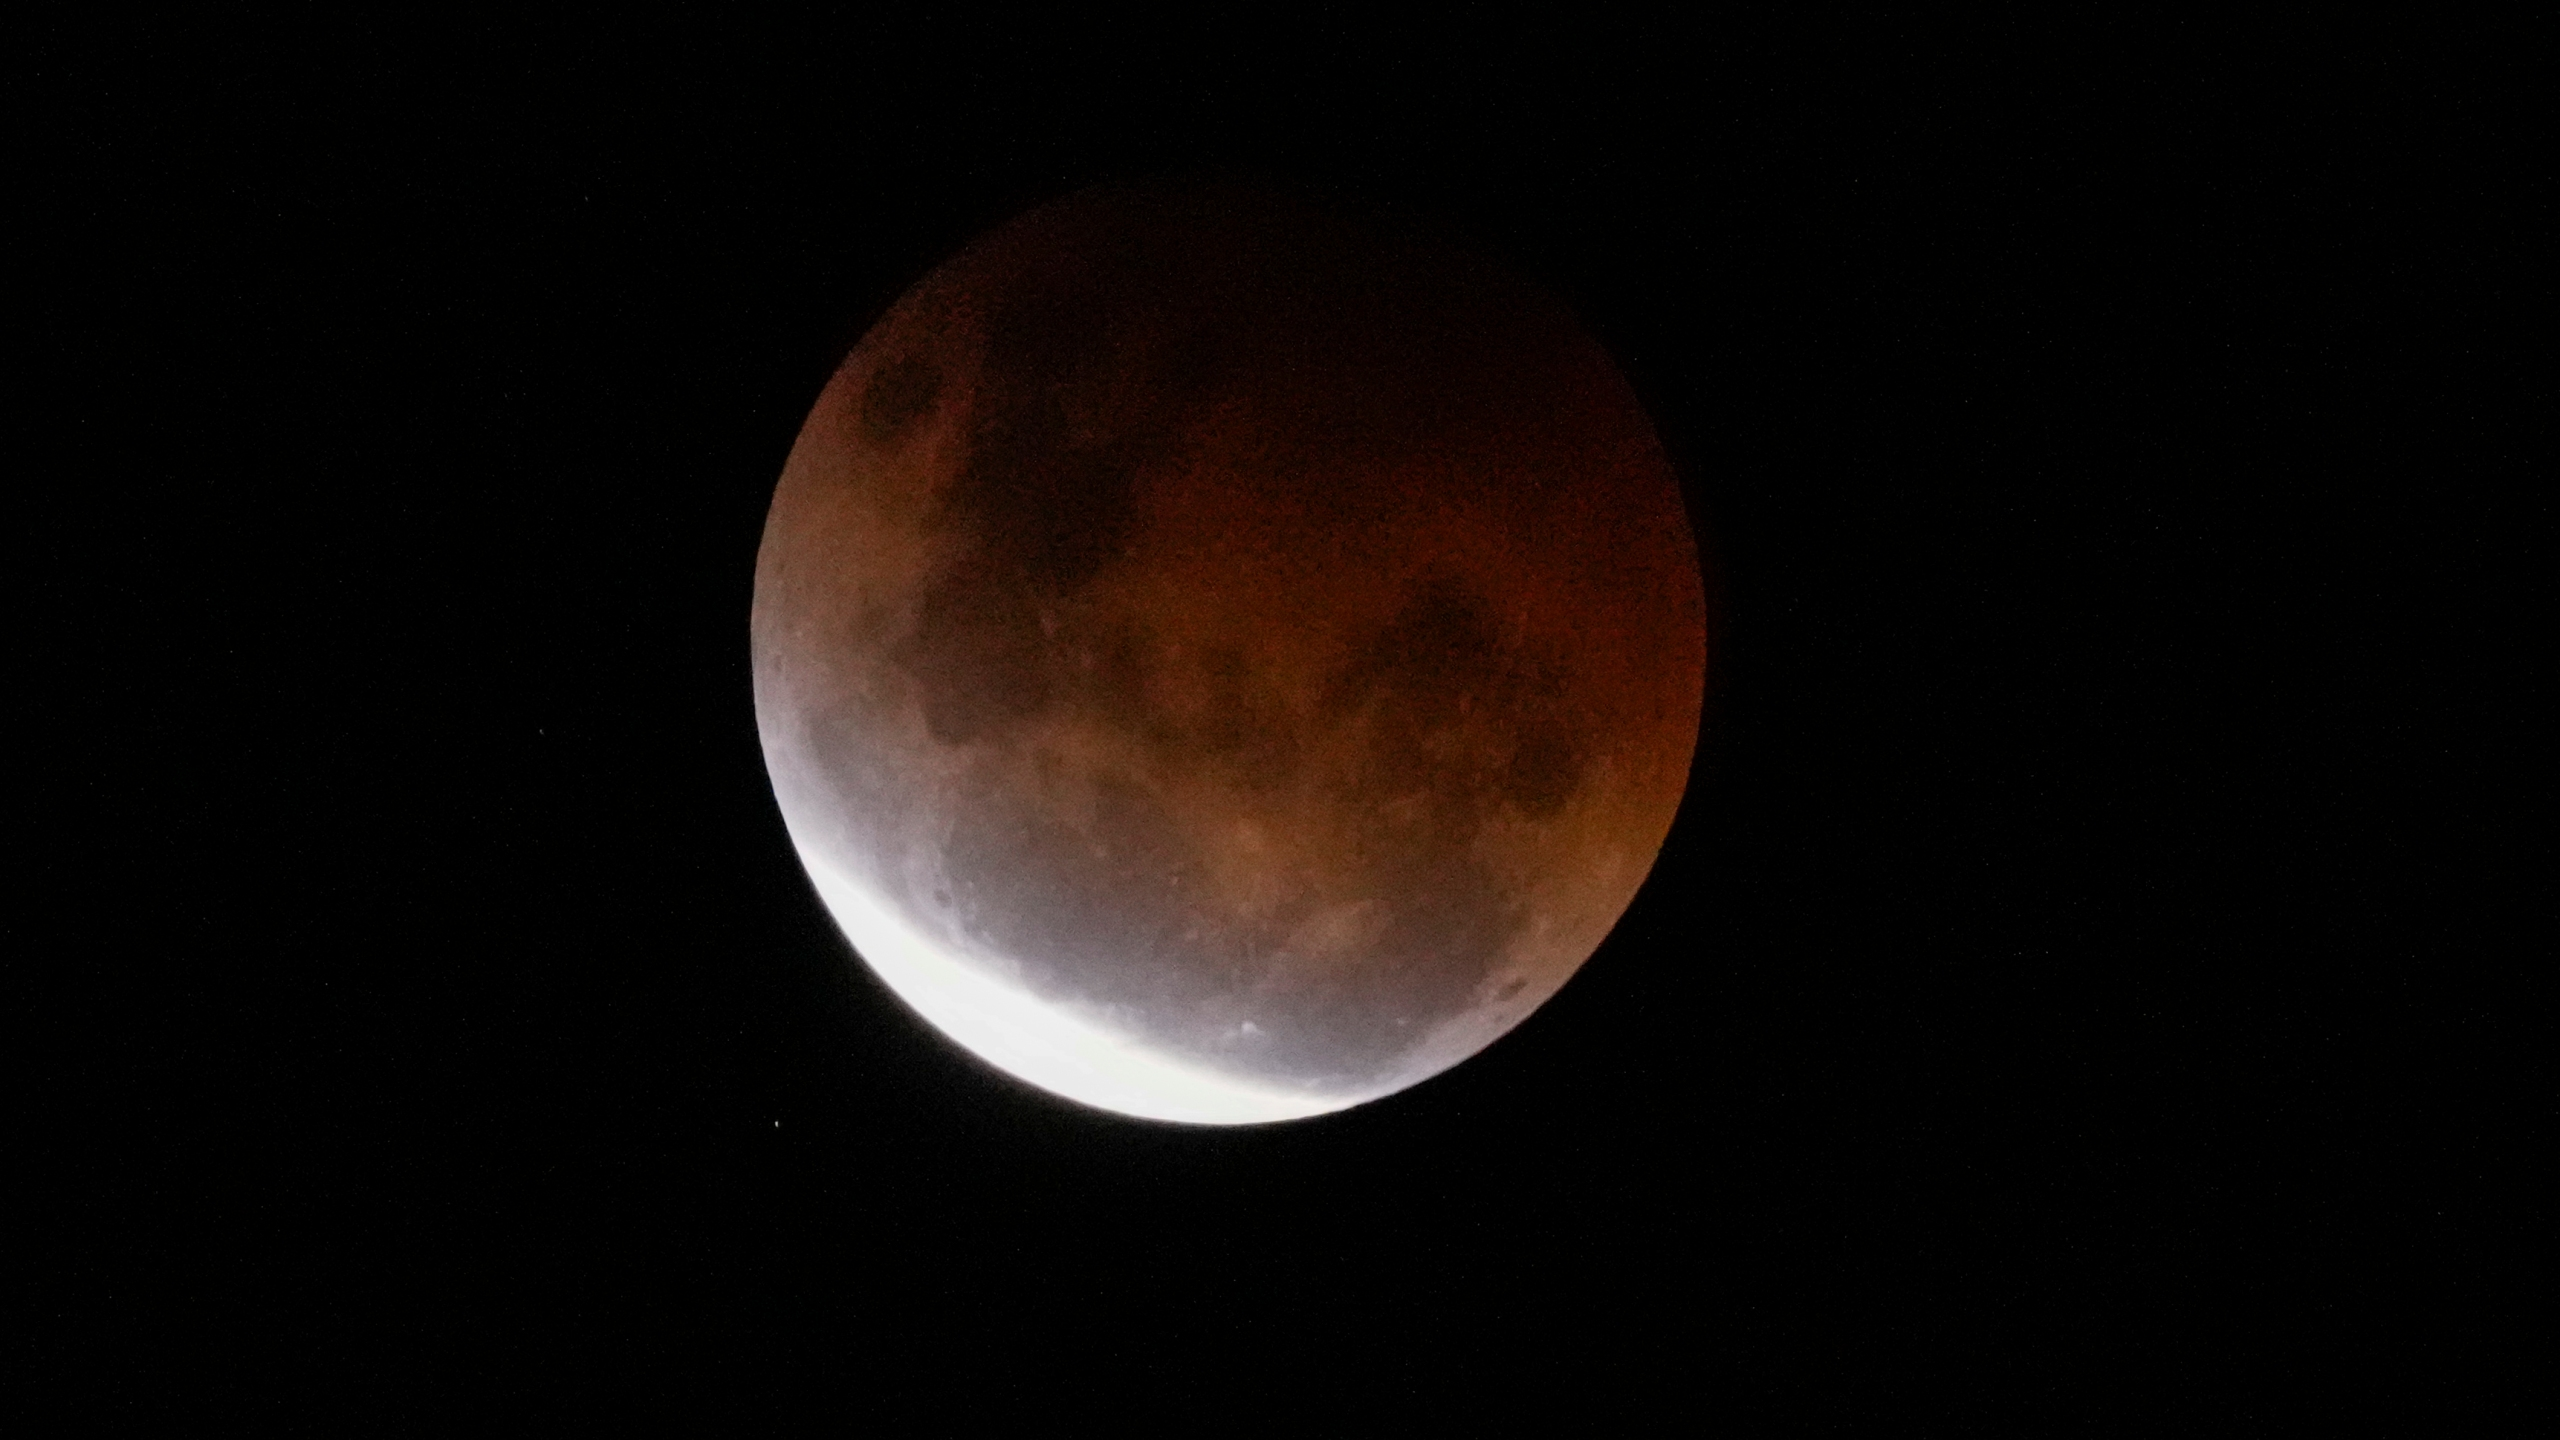 The Earth's shadow falls across the full moon above Sydney, Australia, Wednesday, May 26, 2021. The total lunar eclipse, also known as a super blood moon is the first in two years with the reddish-orange color the result of all the sunrises and sunsets in Earth's atmosphere projected onto the surface of the eclipsed moon. (AP Photo/Mark Baker)